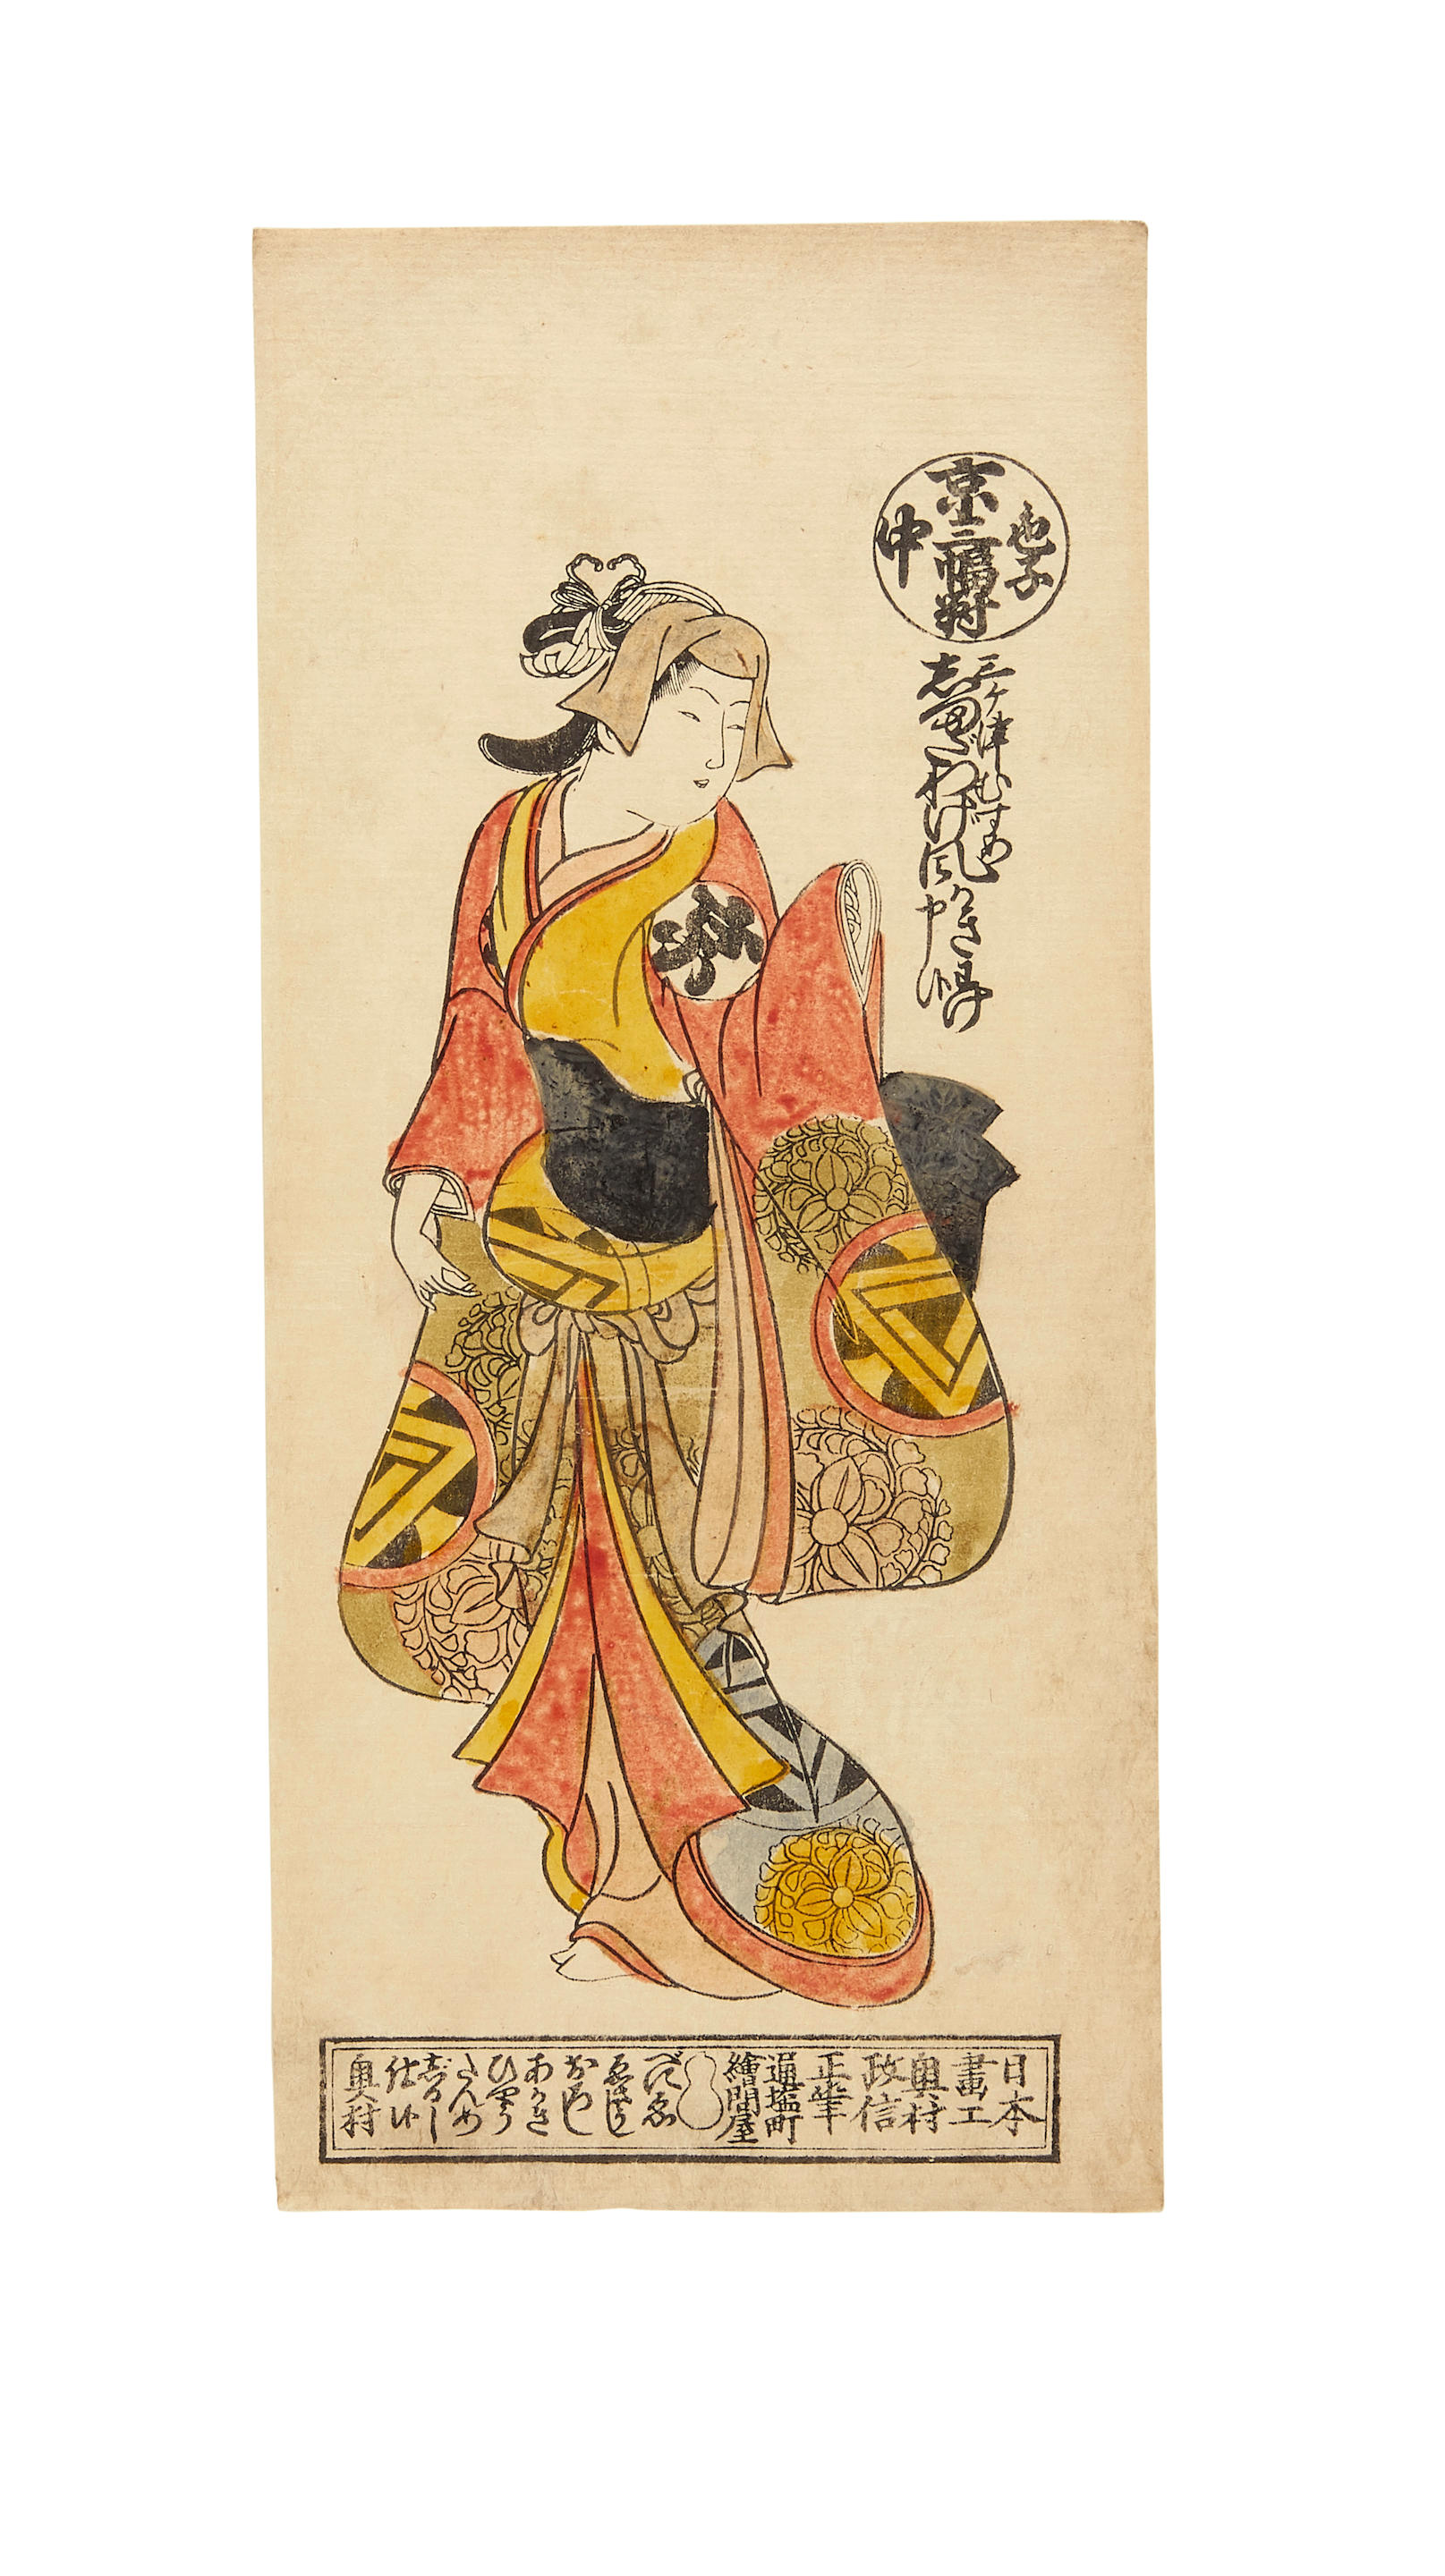 Fine Japanese Prints, including Property from the Collection of the late Bertram and Ruth Malenka